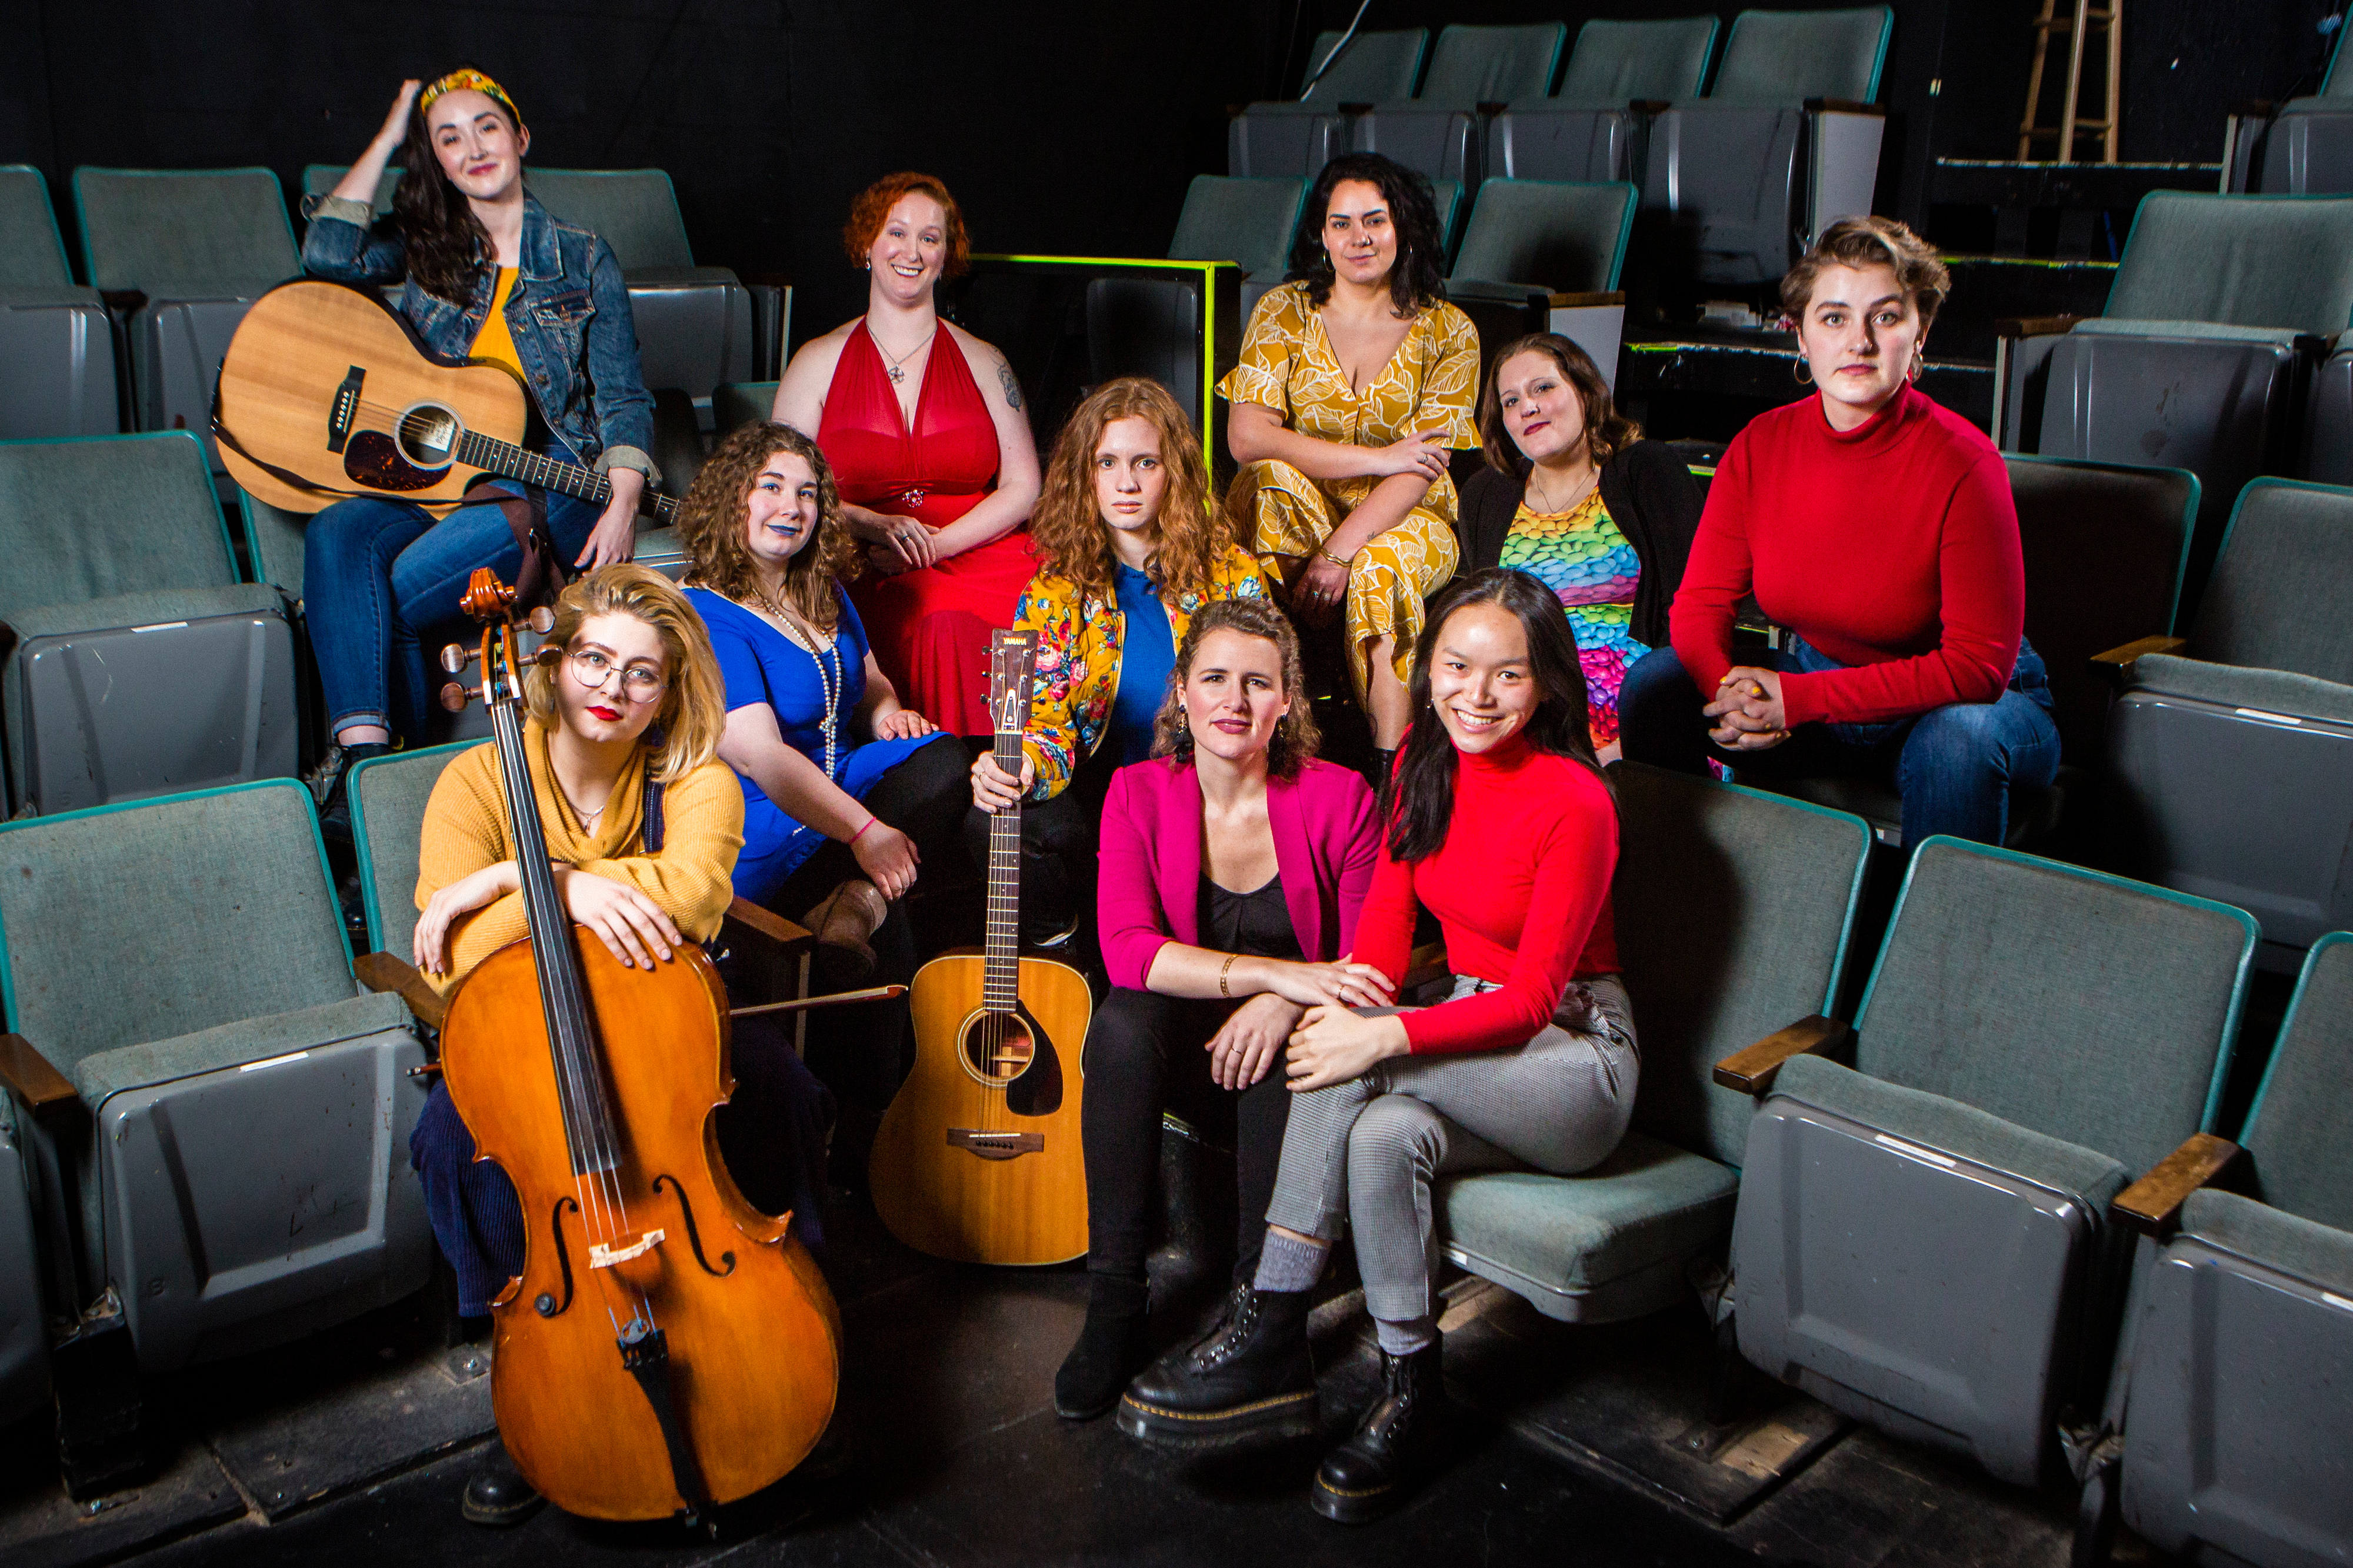 Director Emi Lee Frantz (front row, second from right) and a few of the cast members of LezSing Cabaret are photographed at The Broadway at the Pride Arts Center. Top row: Rebecca Rowland, Casey Daniel, Emily Barnash, Miki Byrne, Mary-Helen Pitman. Front row: Taylor Danae, Chloe Adamo, Jacqui Jaurena, Emi Lee Frantz and Catherine Muller.